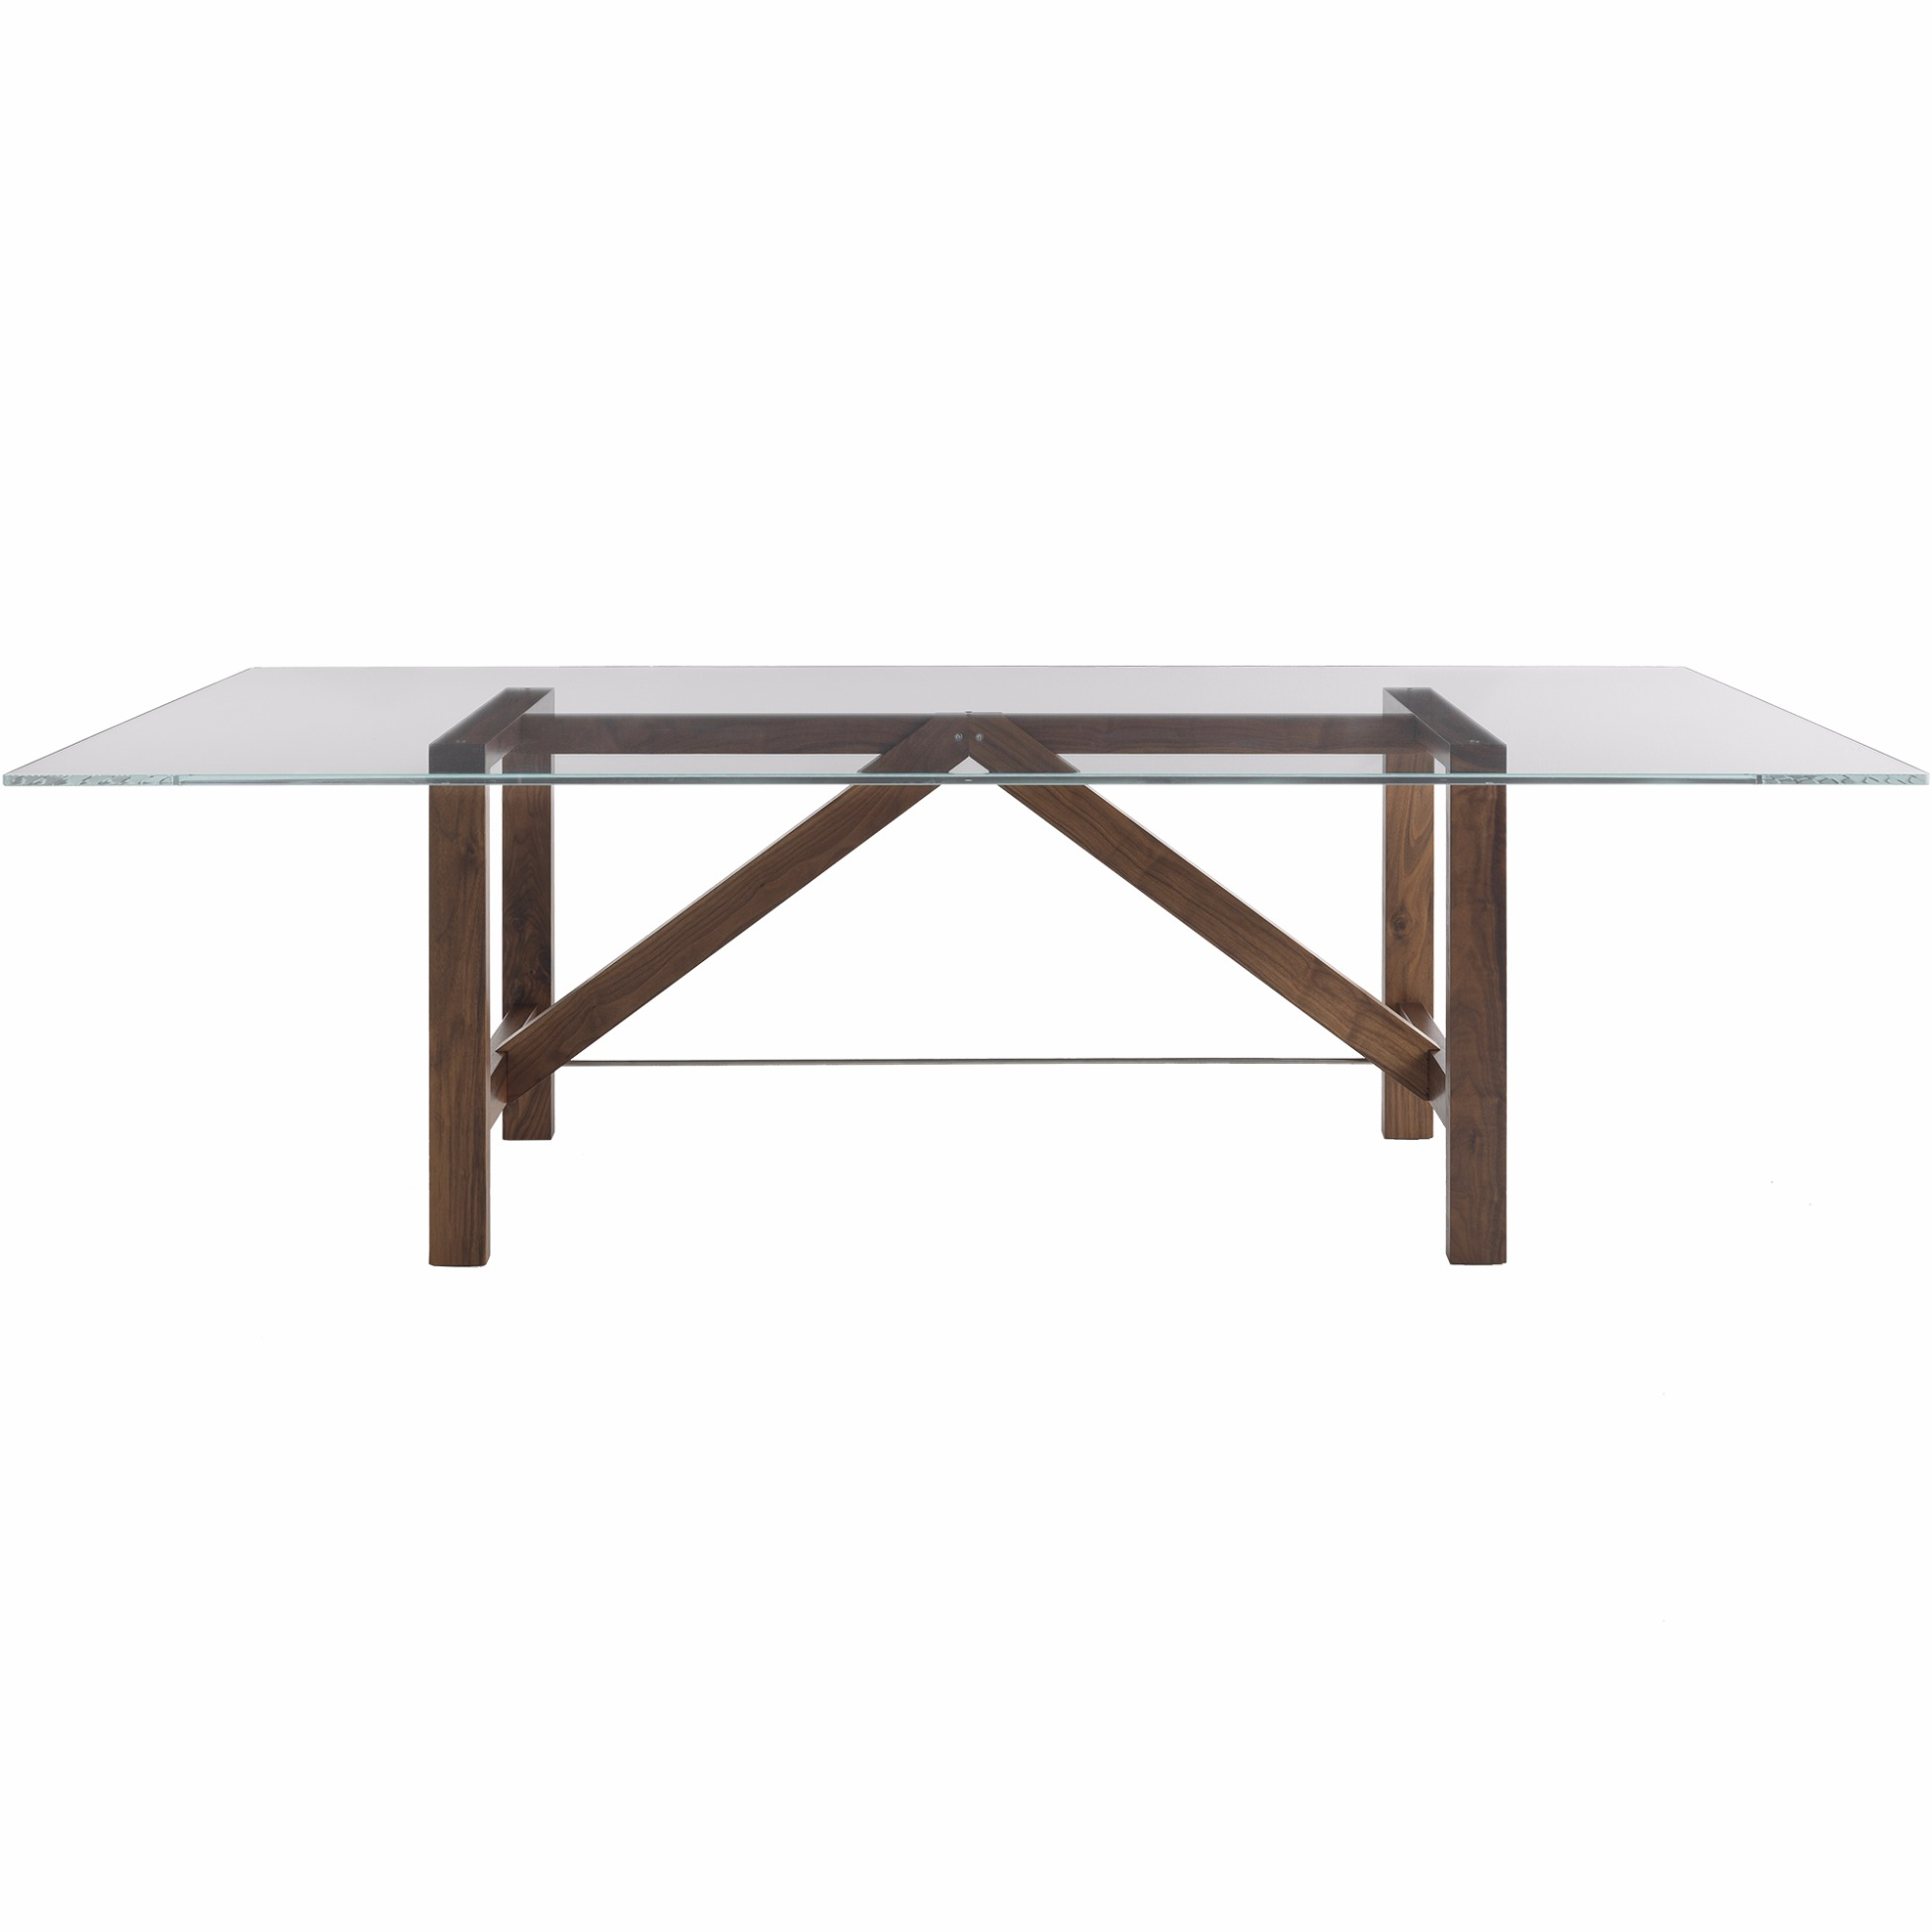 Glastisch Tempered Table Capriata Glass By Horm